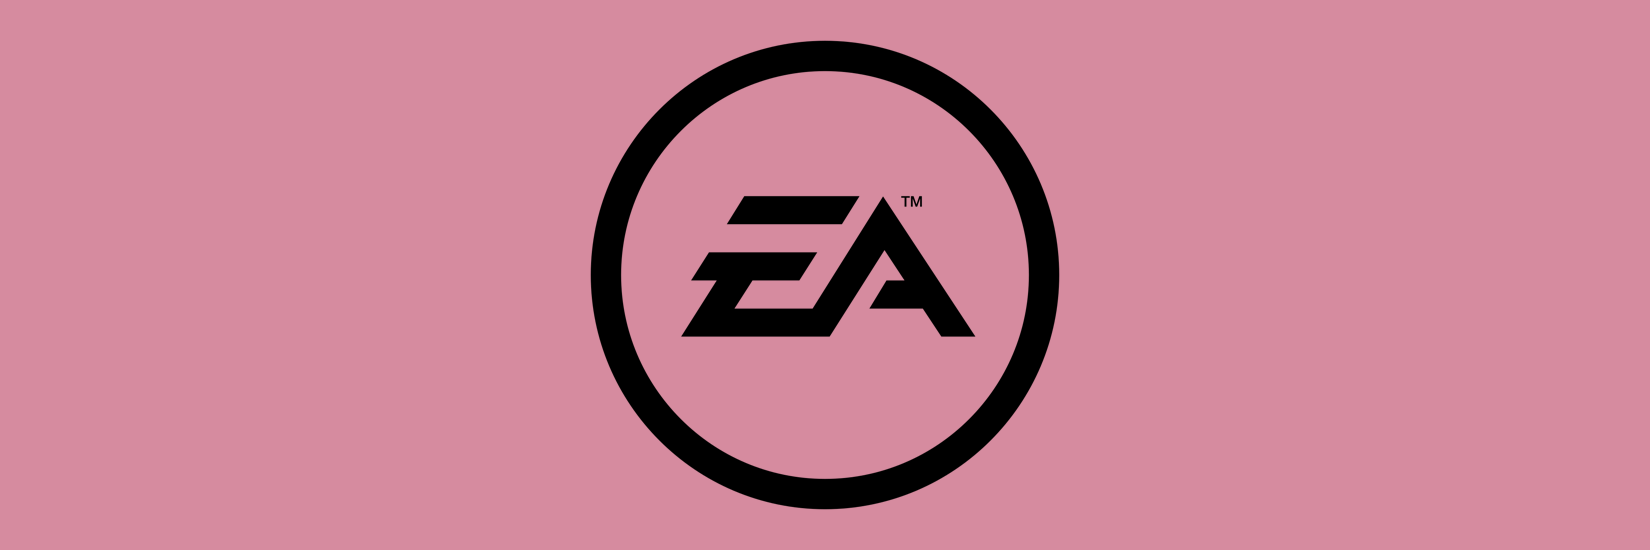 EA Play: Resumen de la Conferencia de Electronic Arts #EAPug #E32019